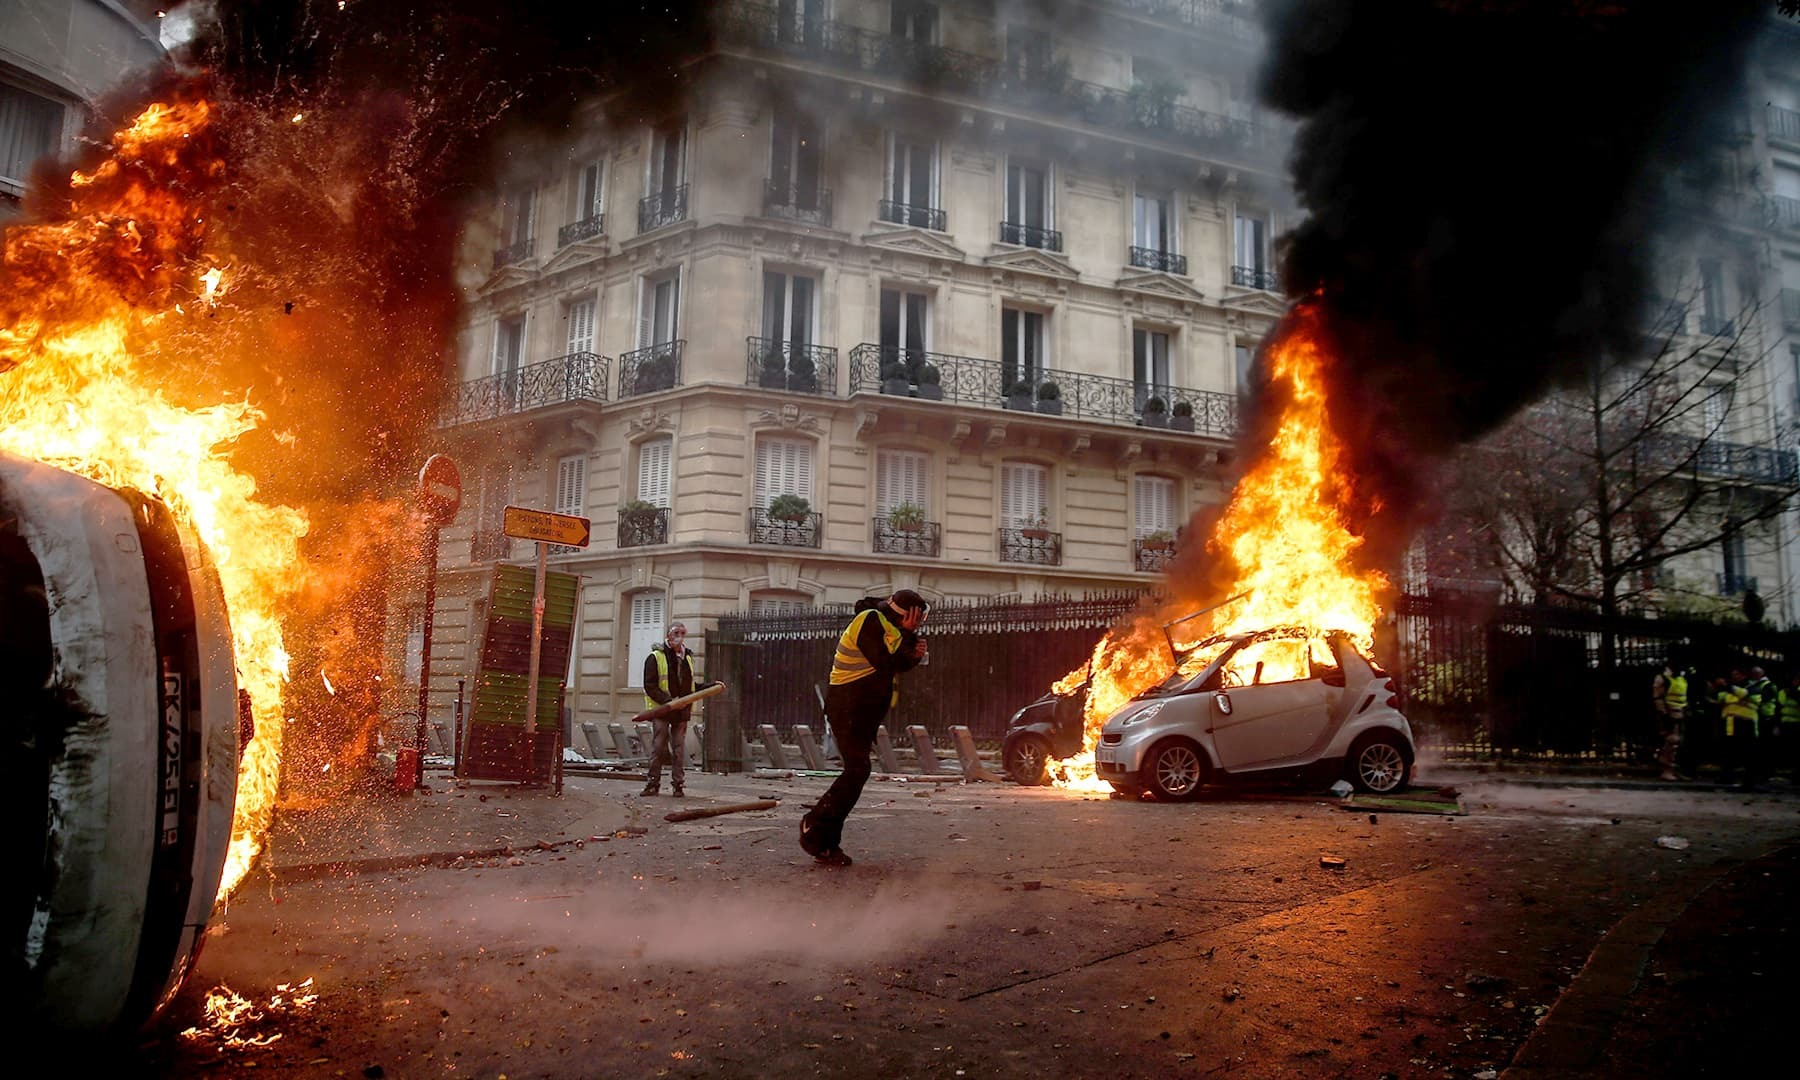 Protesters walk by burning cars during clashes with riot police on the sideline of a protest of Yellow vests (Gilets jaunes) against rising oil prices and living costs. — AFP